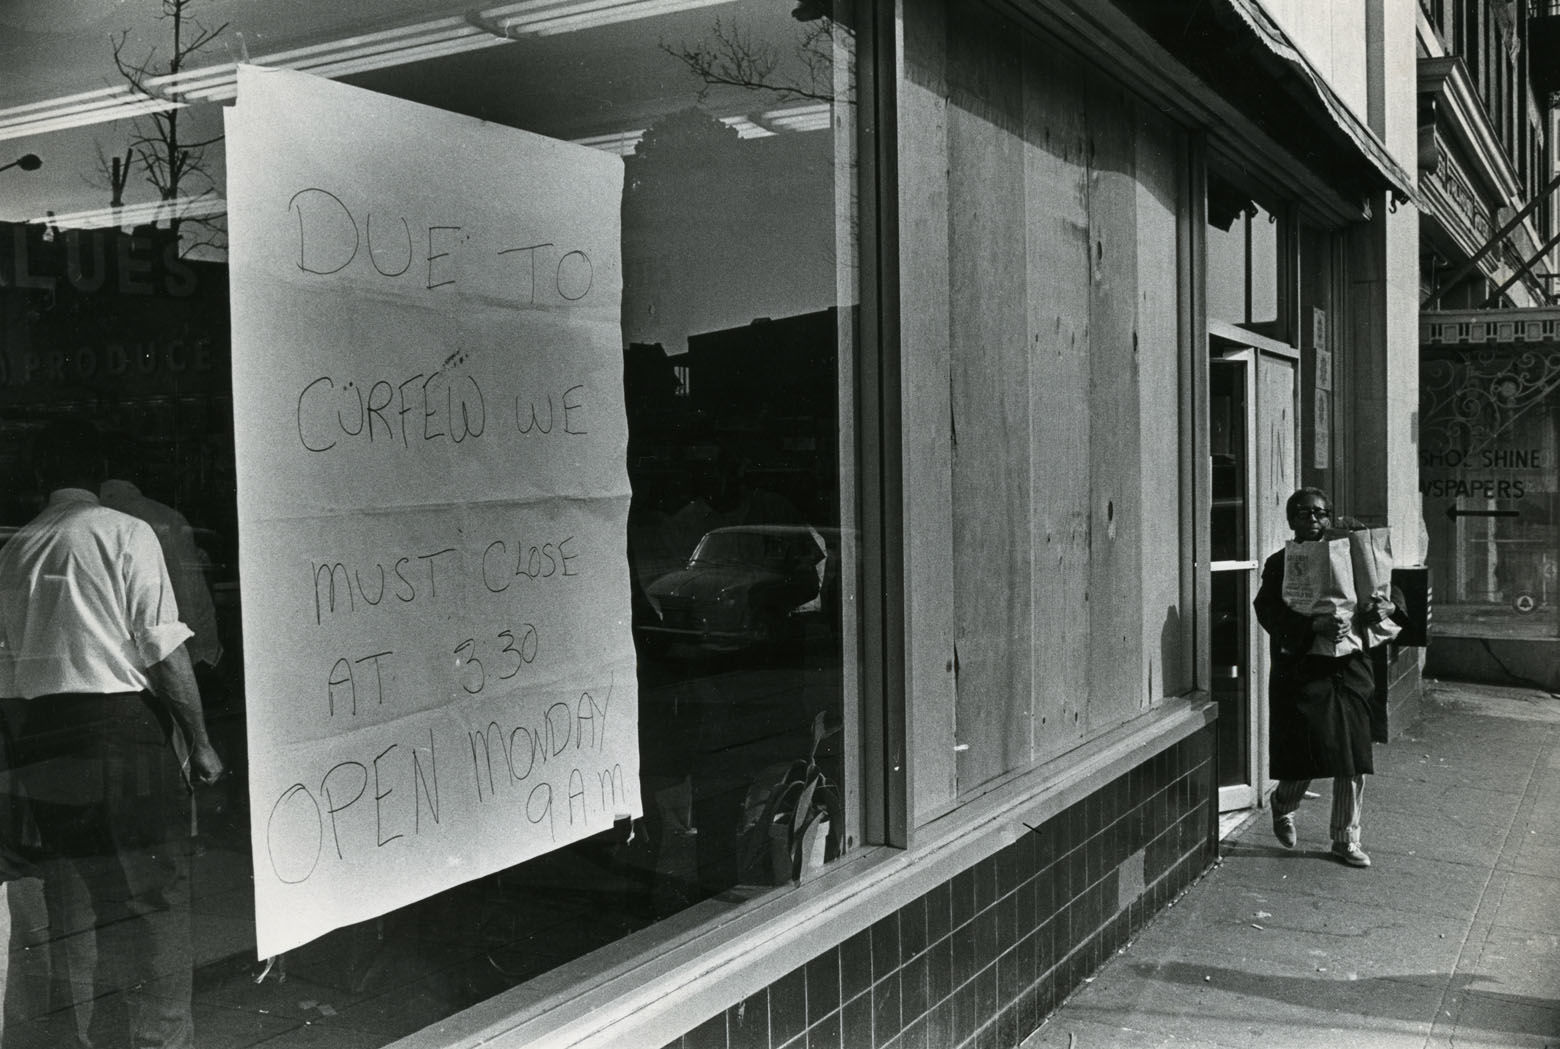 "The unrest prompted a strict curfew for several days. This store carries a sign reading: ""Due to curfew we must cose at 3:30. Open Monday 9 a.m."" Reprinted with permission of the DC Public Library, Star Collection, © Washington Post."